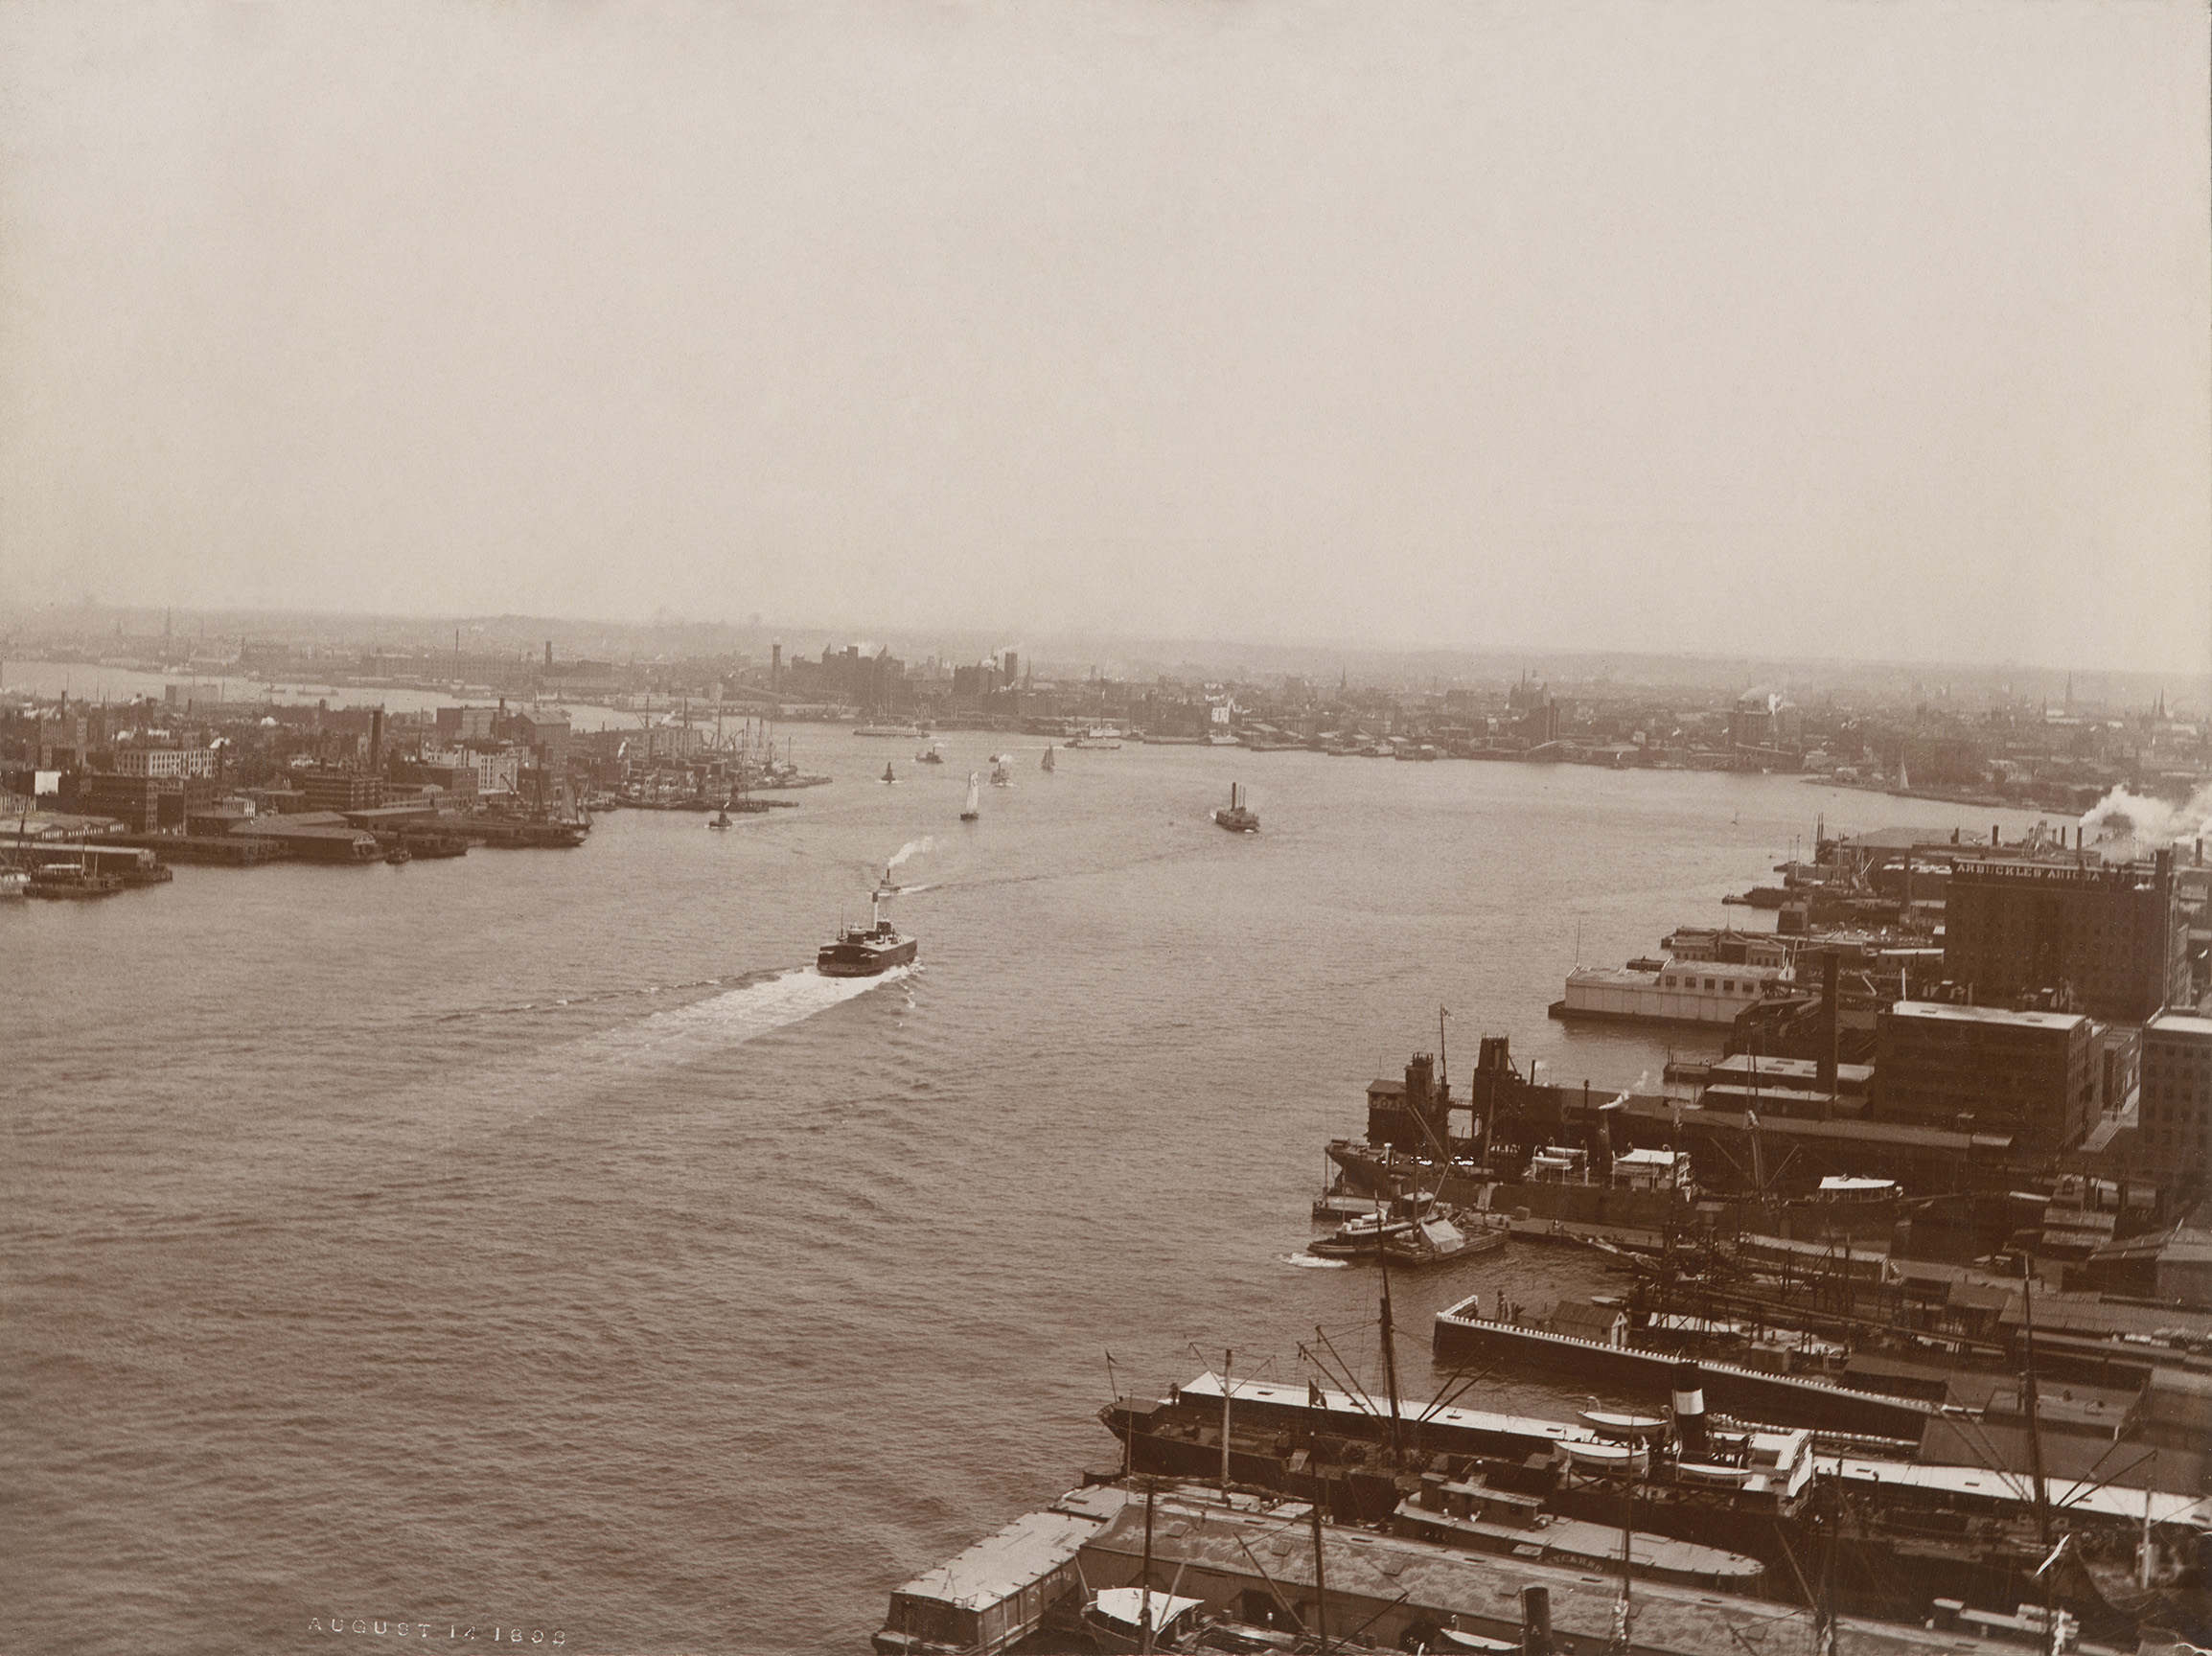 East River, August 14, 1893